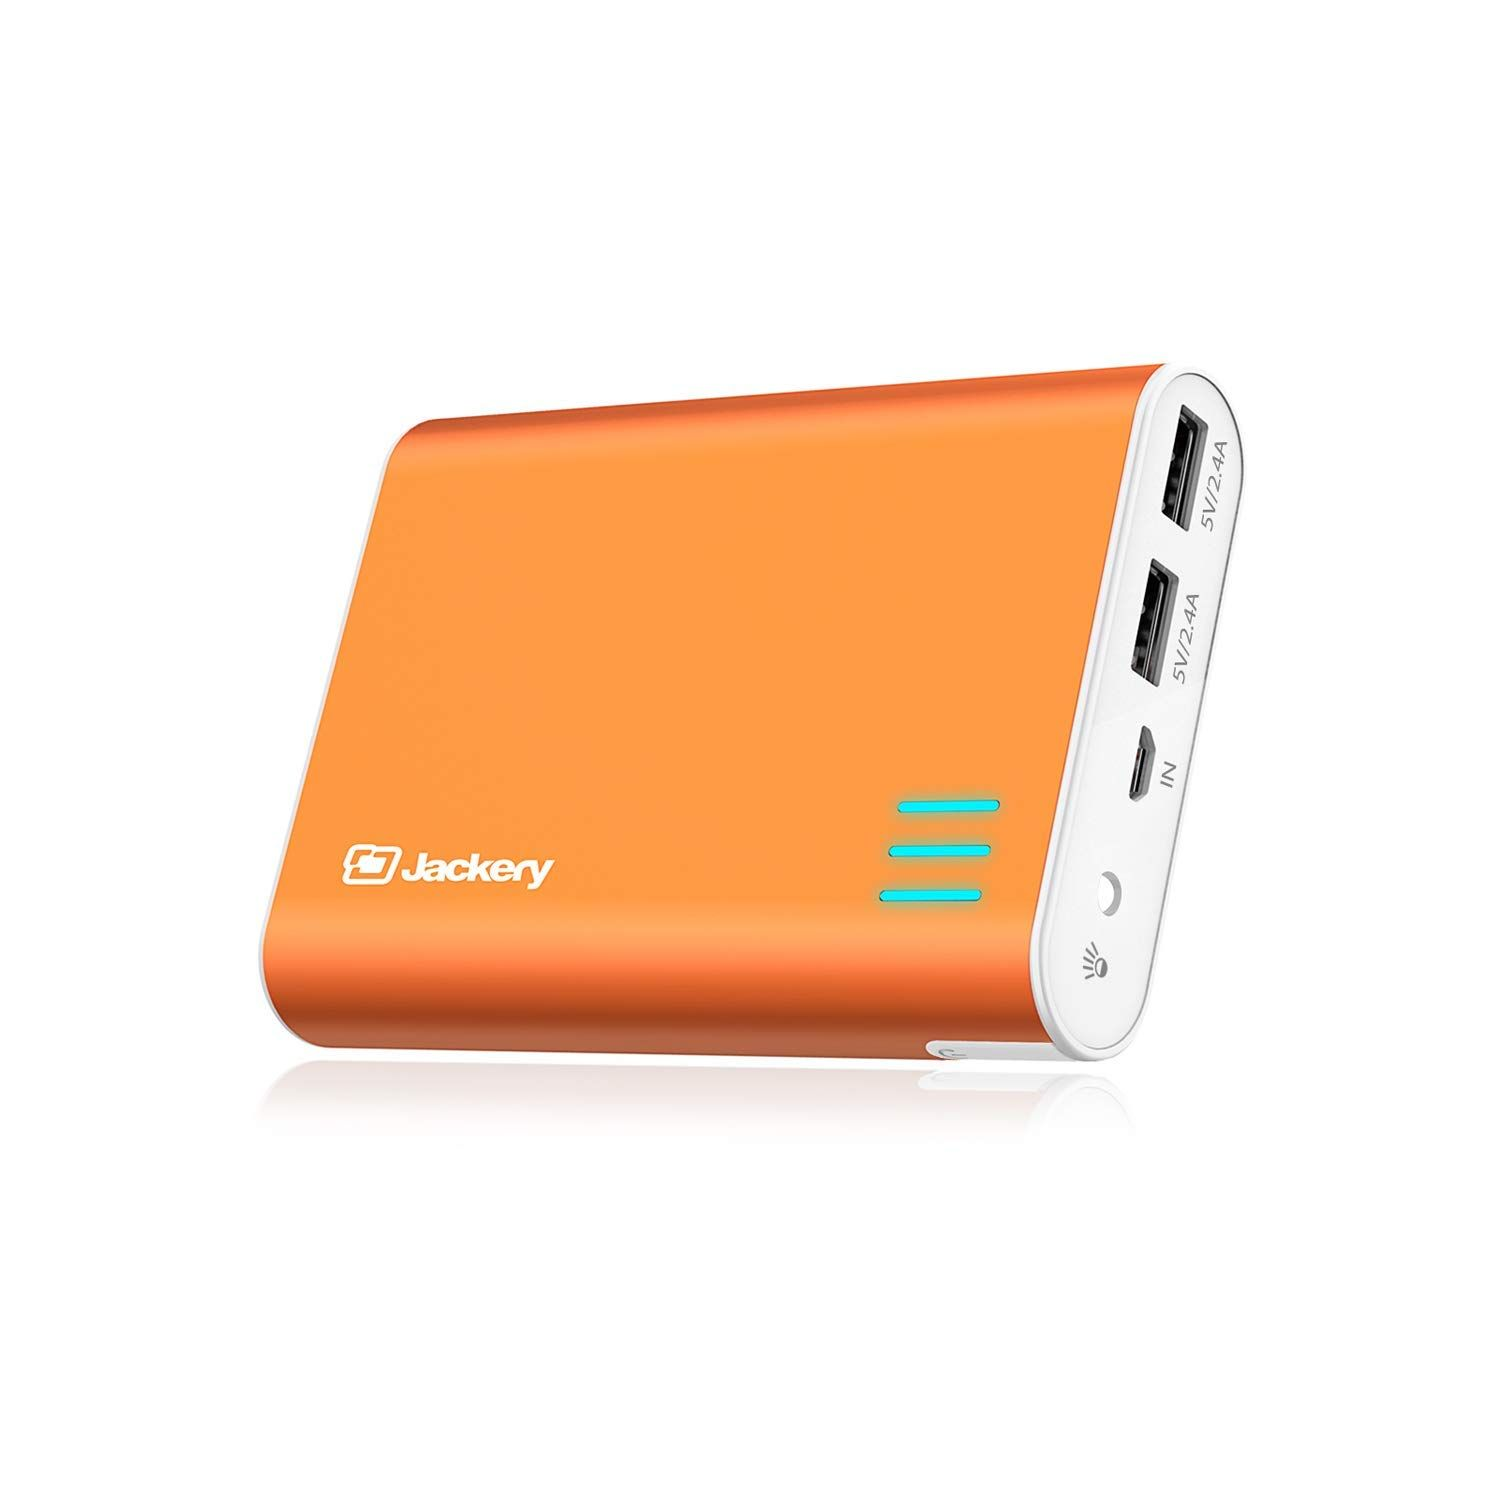 Jackery External Battery Charger Giant 12000mah Dual Usb Portable Battery Charger External Battery Pack Phone Backup Power Bank With Emergency Flashlight For I